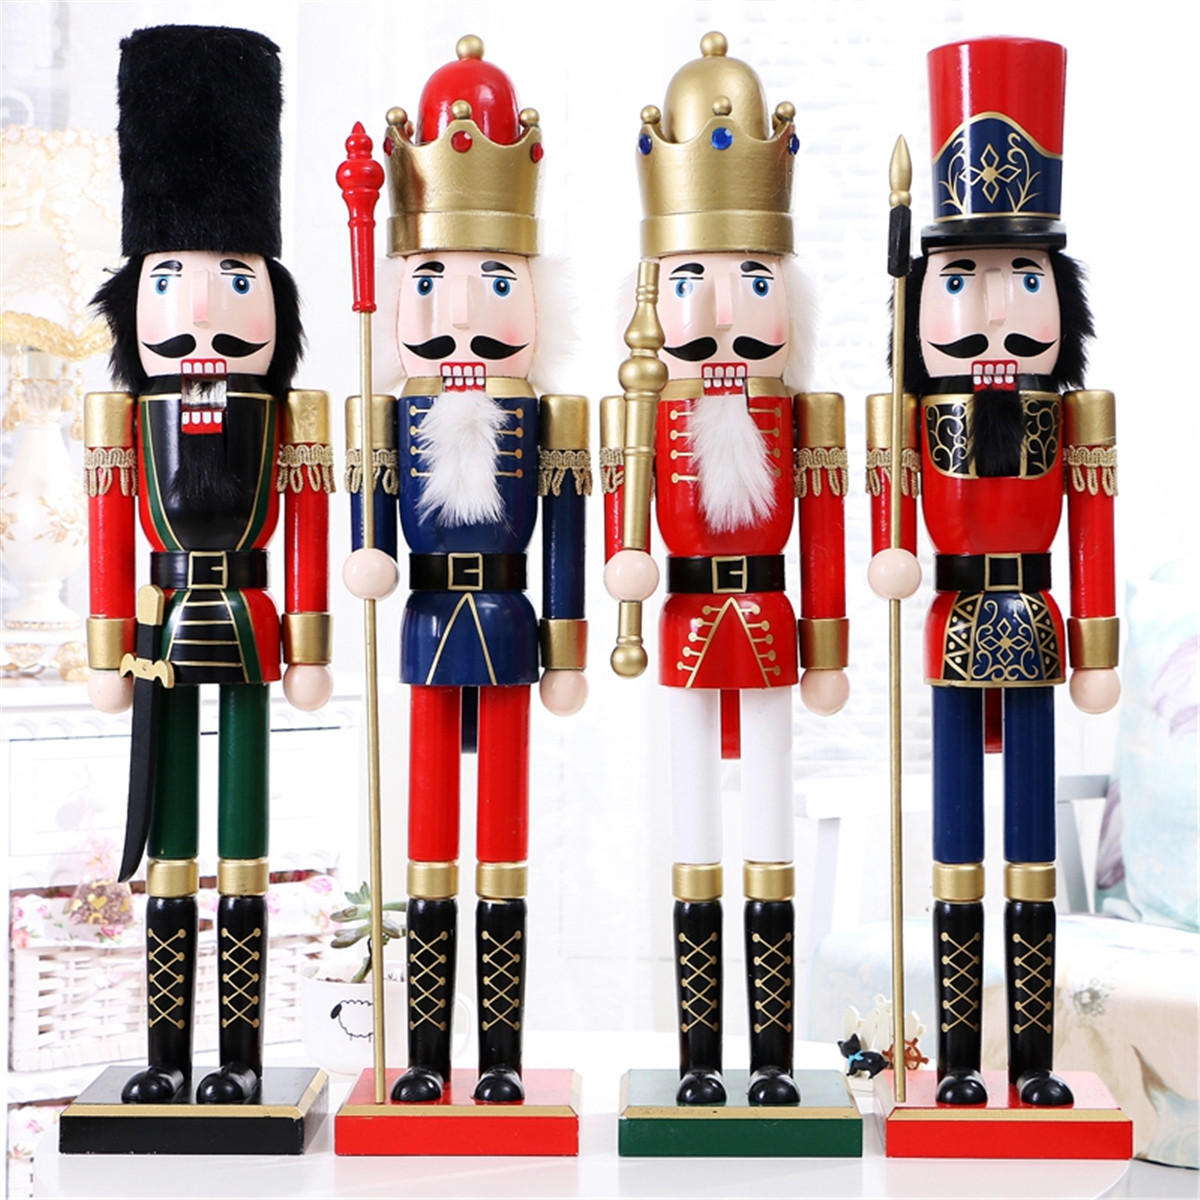 60cm Nut Cracker Soldier Christmas Decoration Nutcrackers Xmas Kitchen Wooden Doll - 4 COD